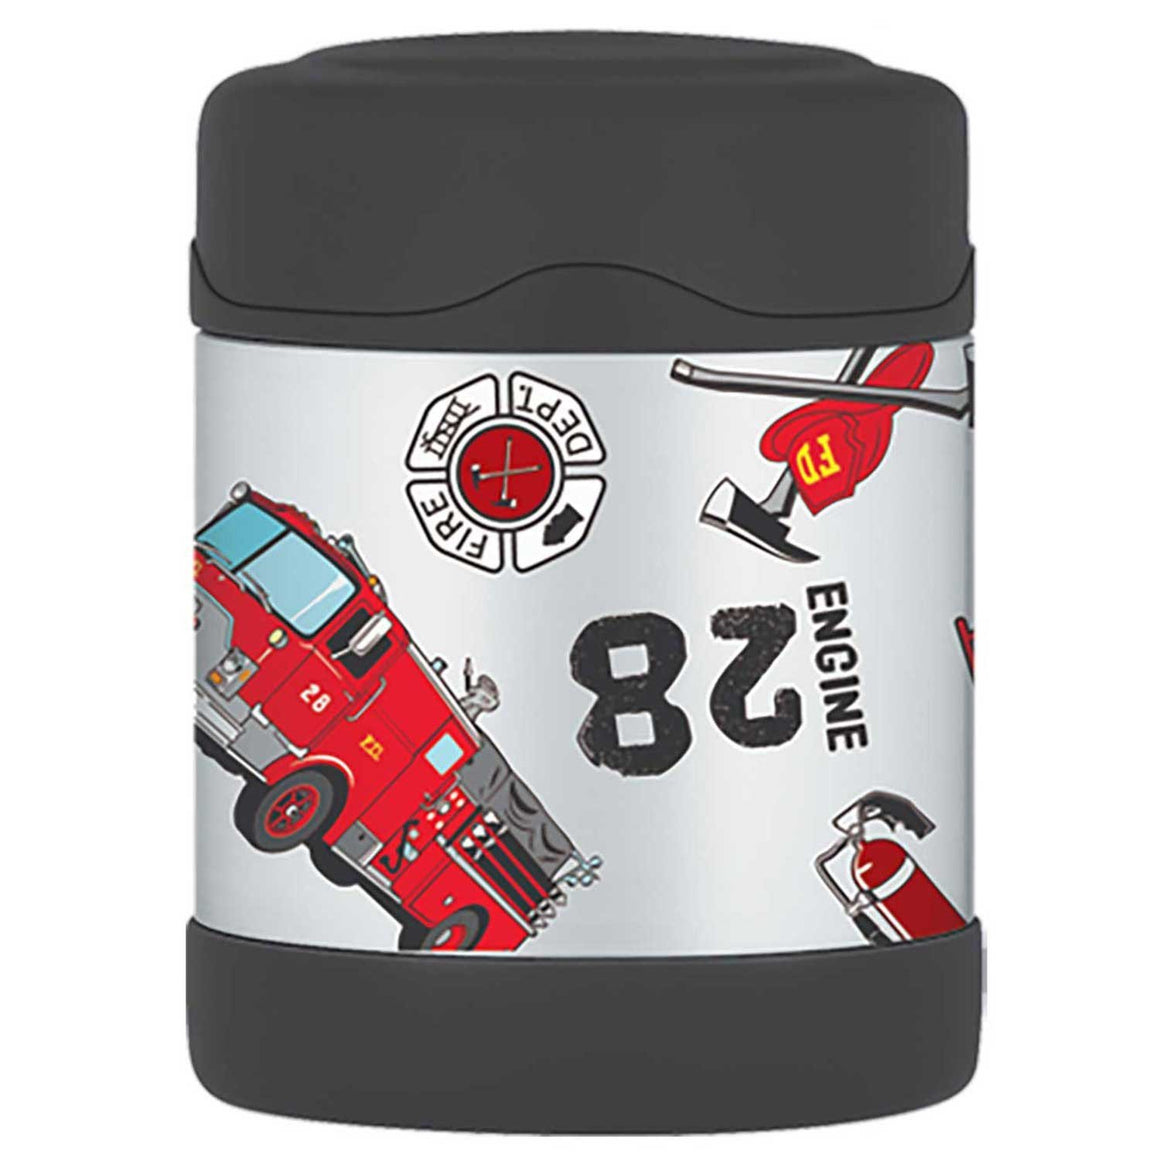 Thermos Funtainer Stainless Steel Vacuum Insulated Food Jar 290ml Fire Truck - Stuff-n-Things